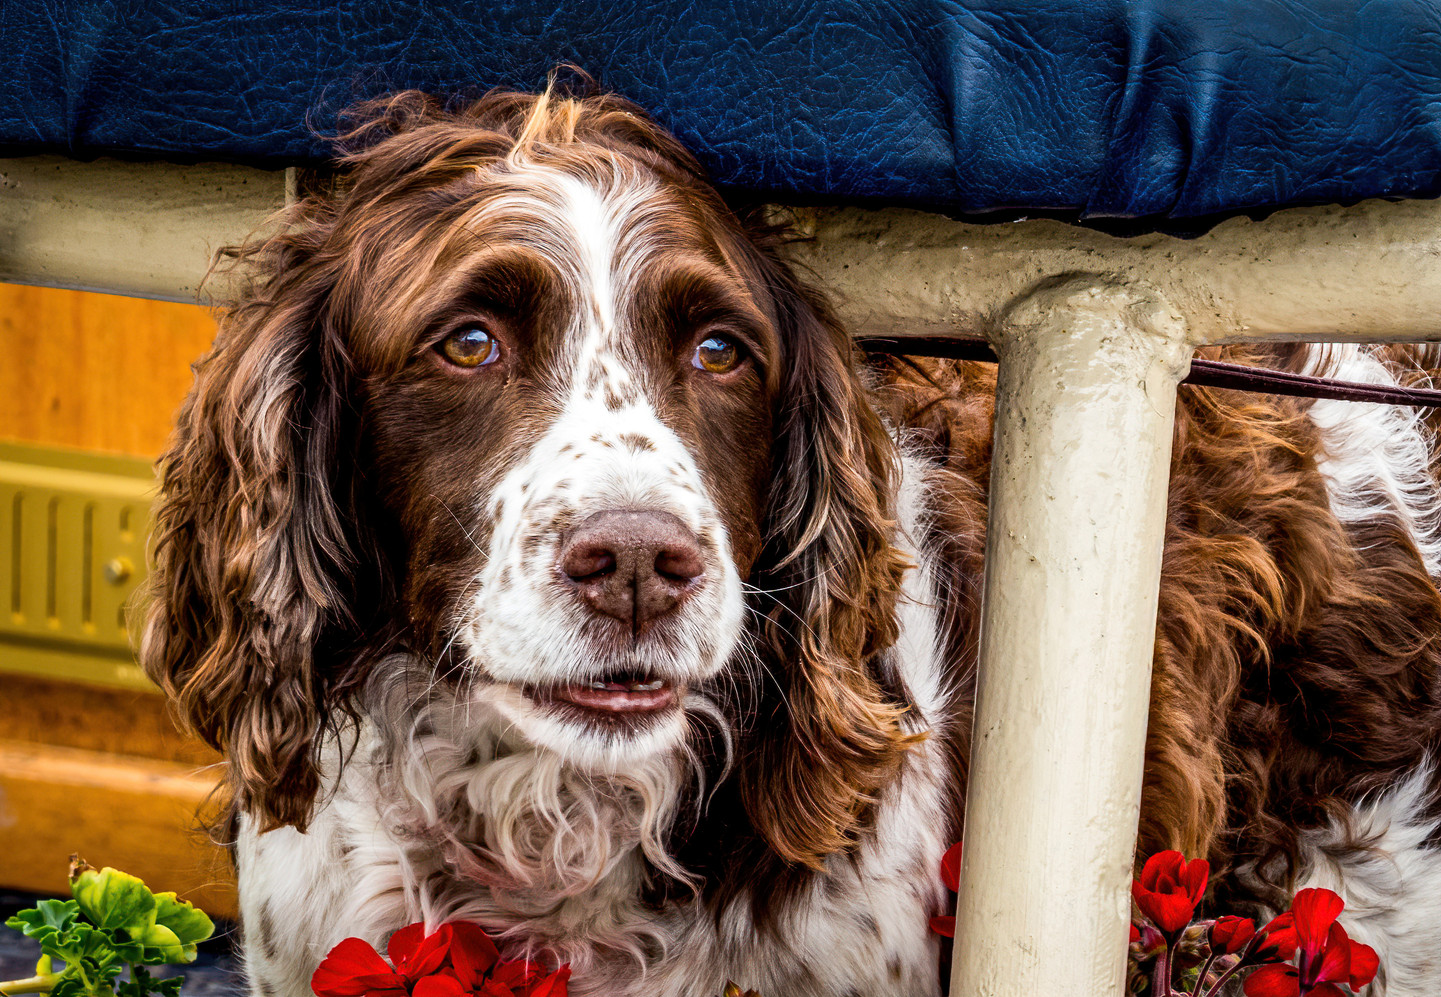 """Highly Commended - """"Man's Best Friend"""" by David Brennan"""